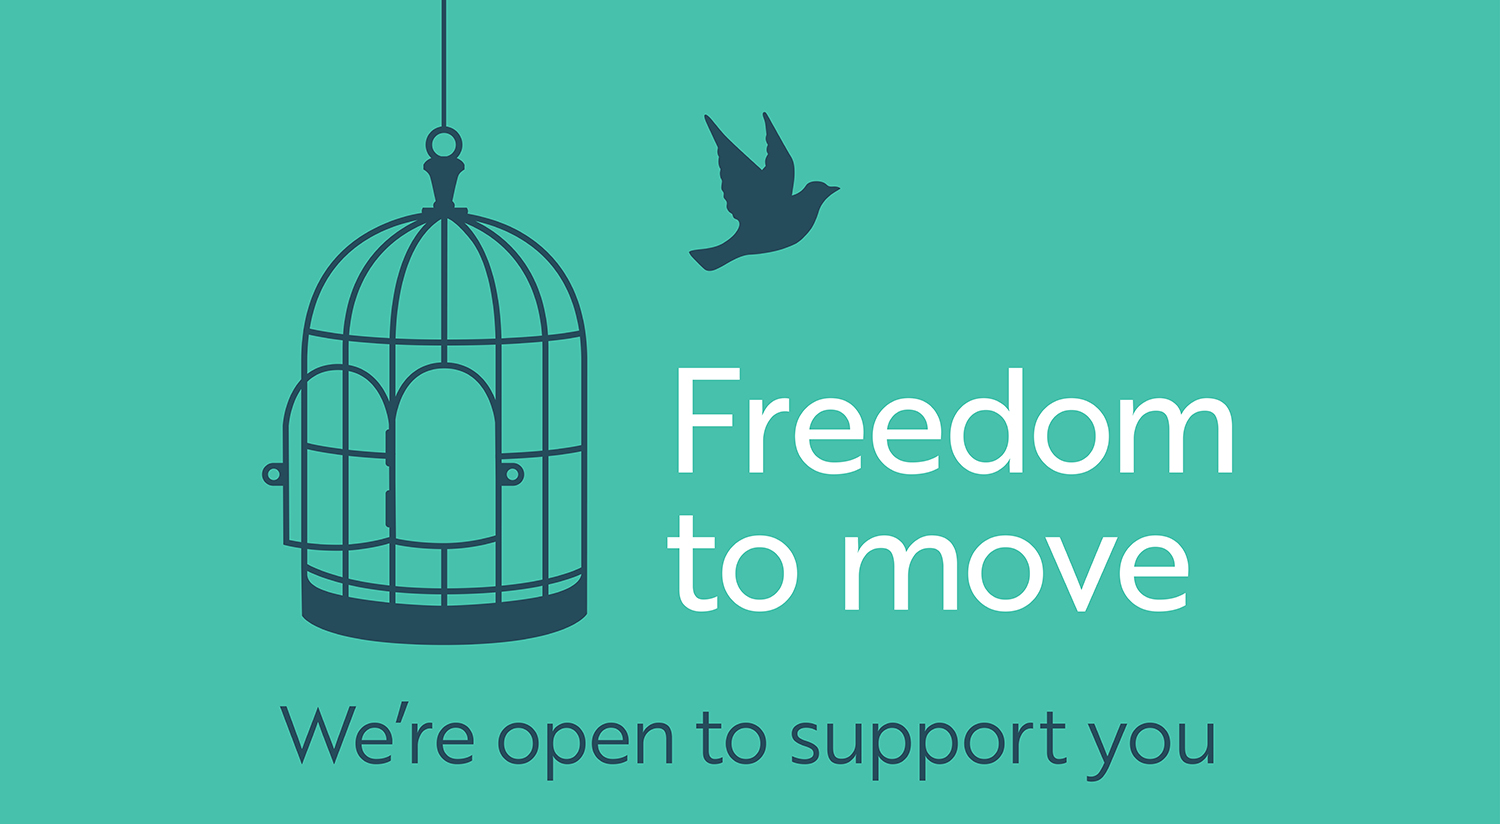 Freedom to move!